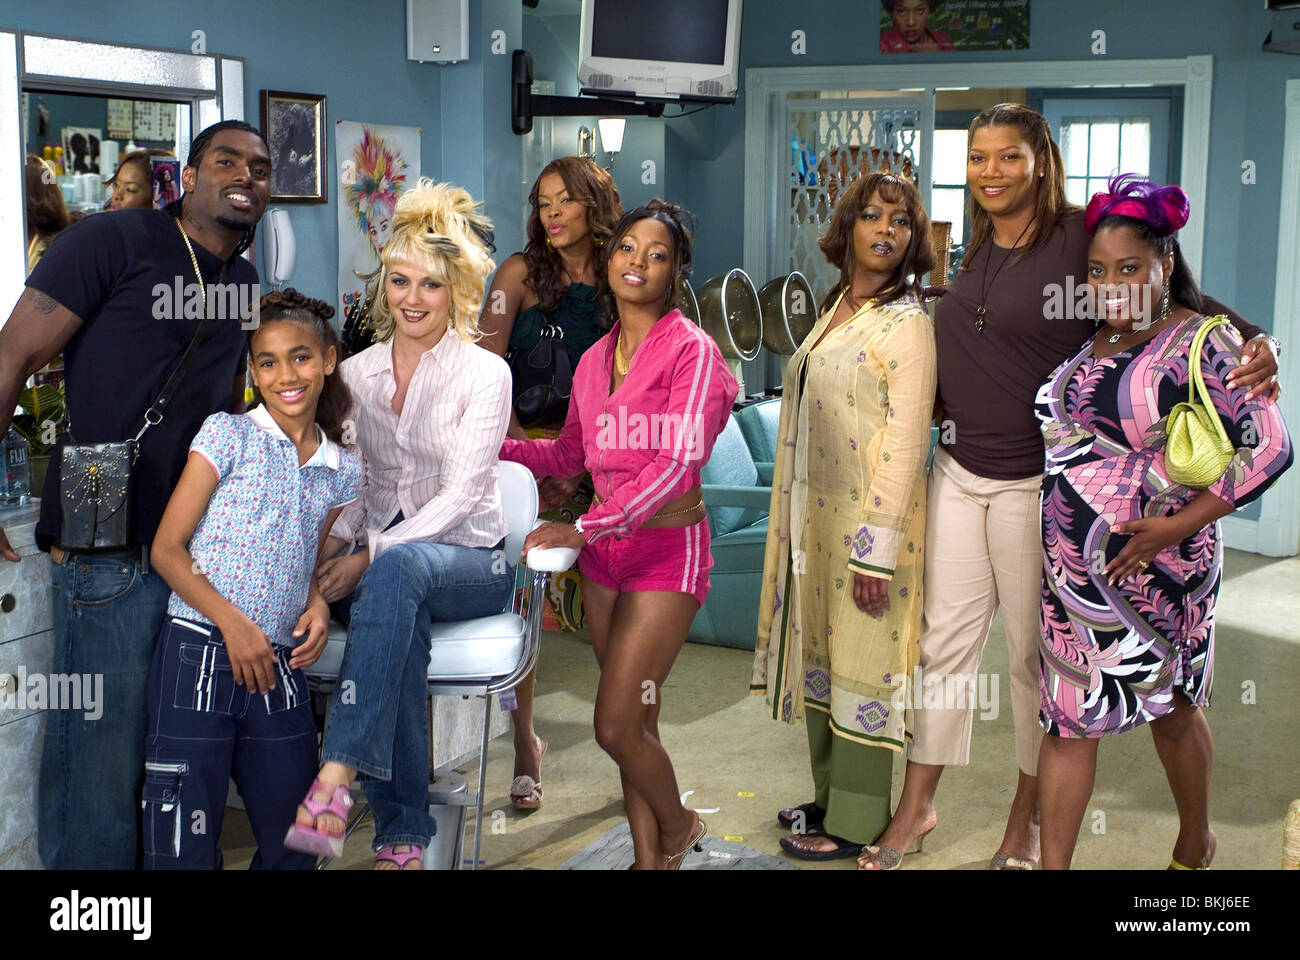 BEAUTY SHOP 2005 BRYCE WILSON PAIGE HURD ALICIA SILVERSTONE GOLDEN BROOKS KESHIA KNIGHT PULLIAM ALFRE WOODARD QUEEN